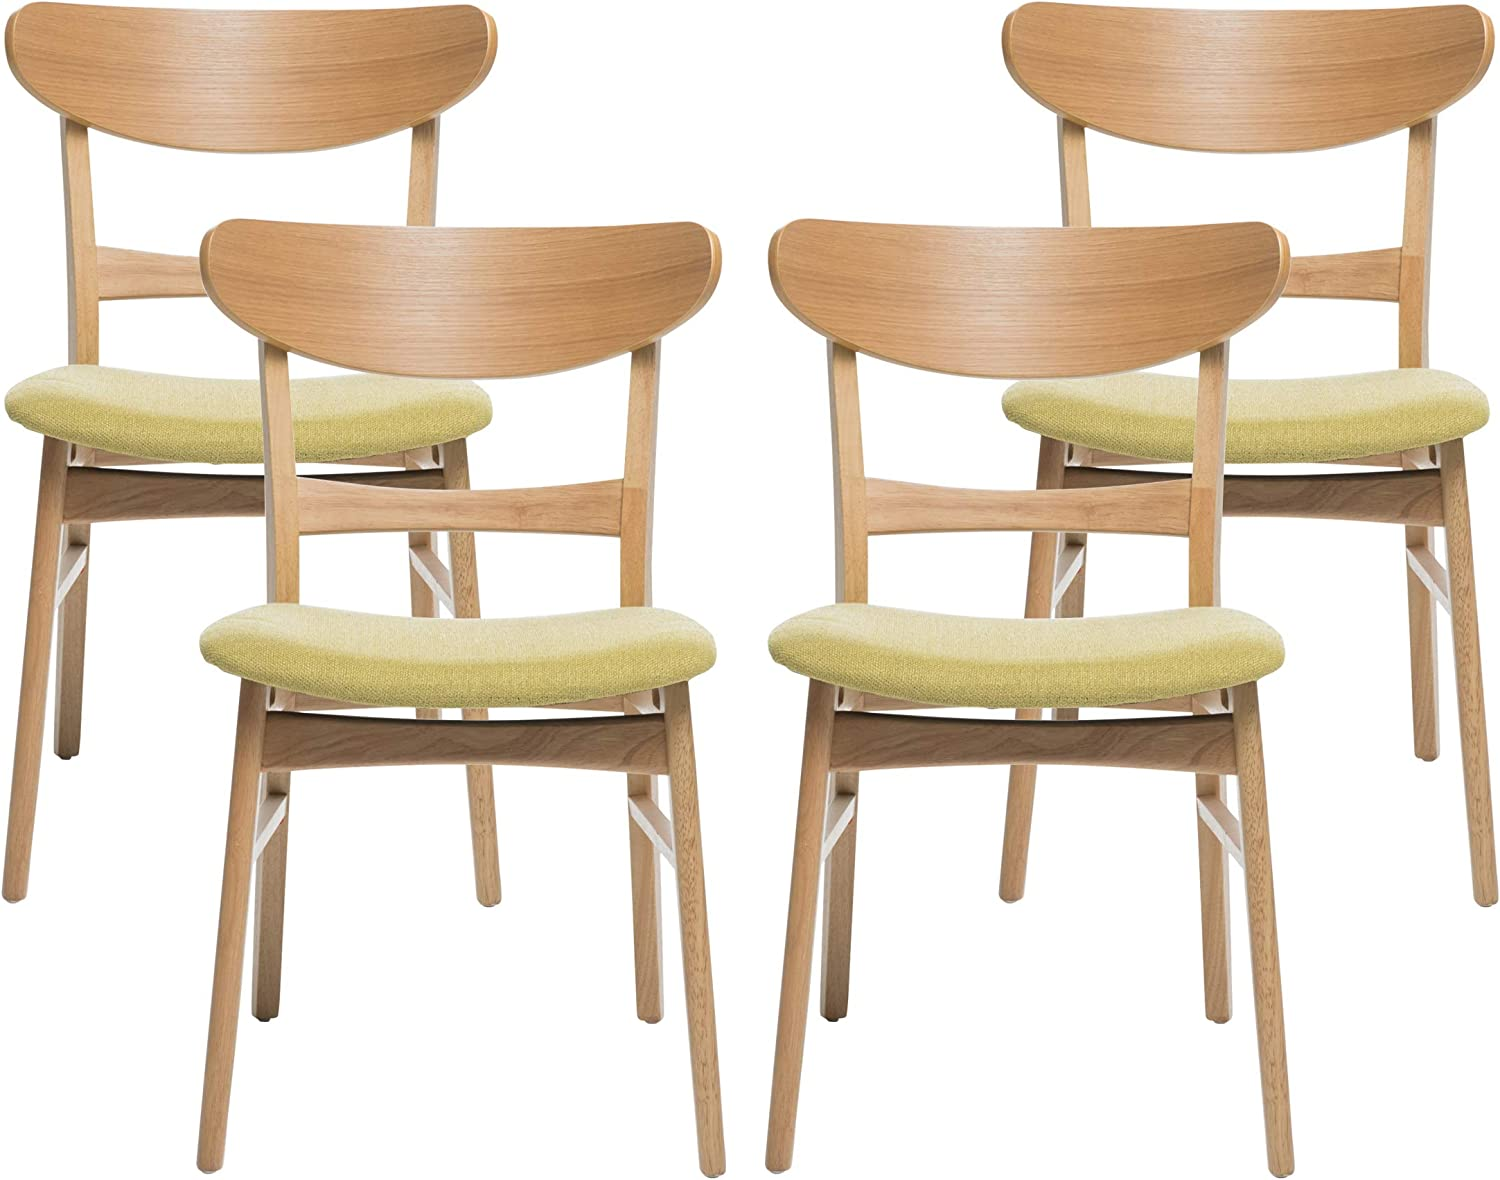 Christopher Knight Home Gloria Mid-Century Modern Dining Chairs (Set of 4), Green Tea, Natural Oak